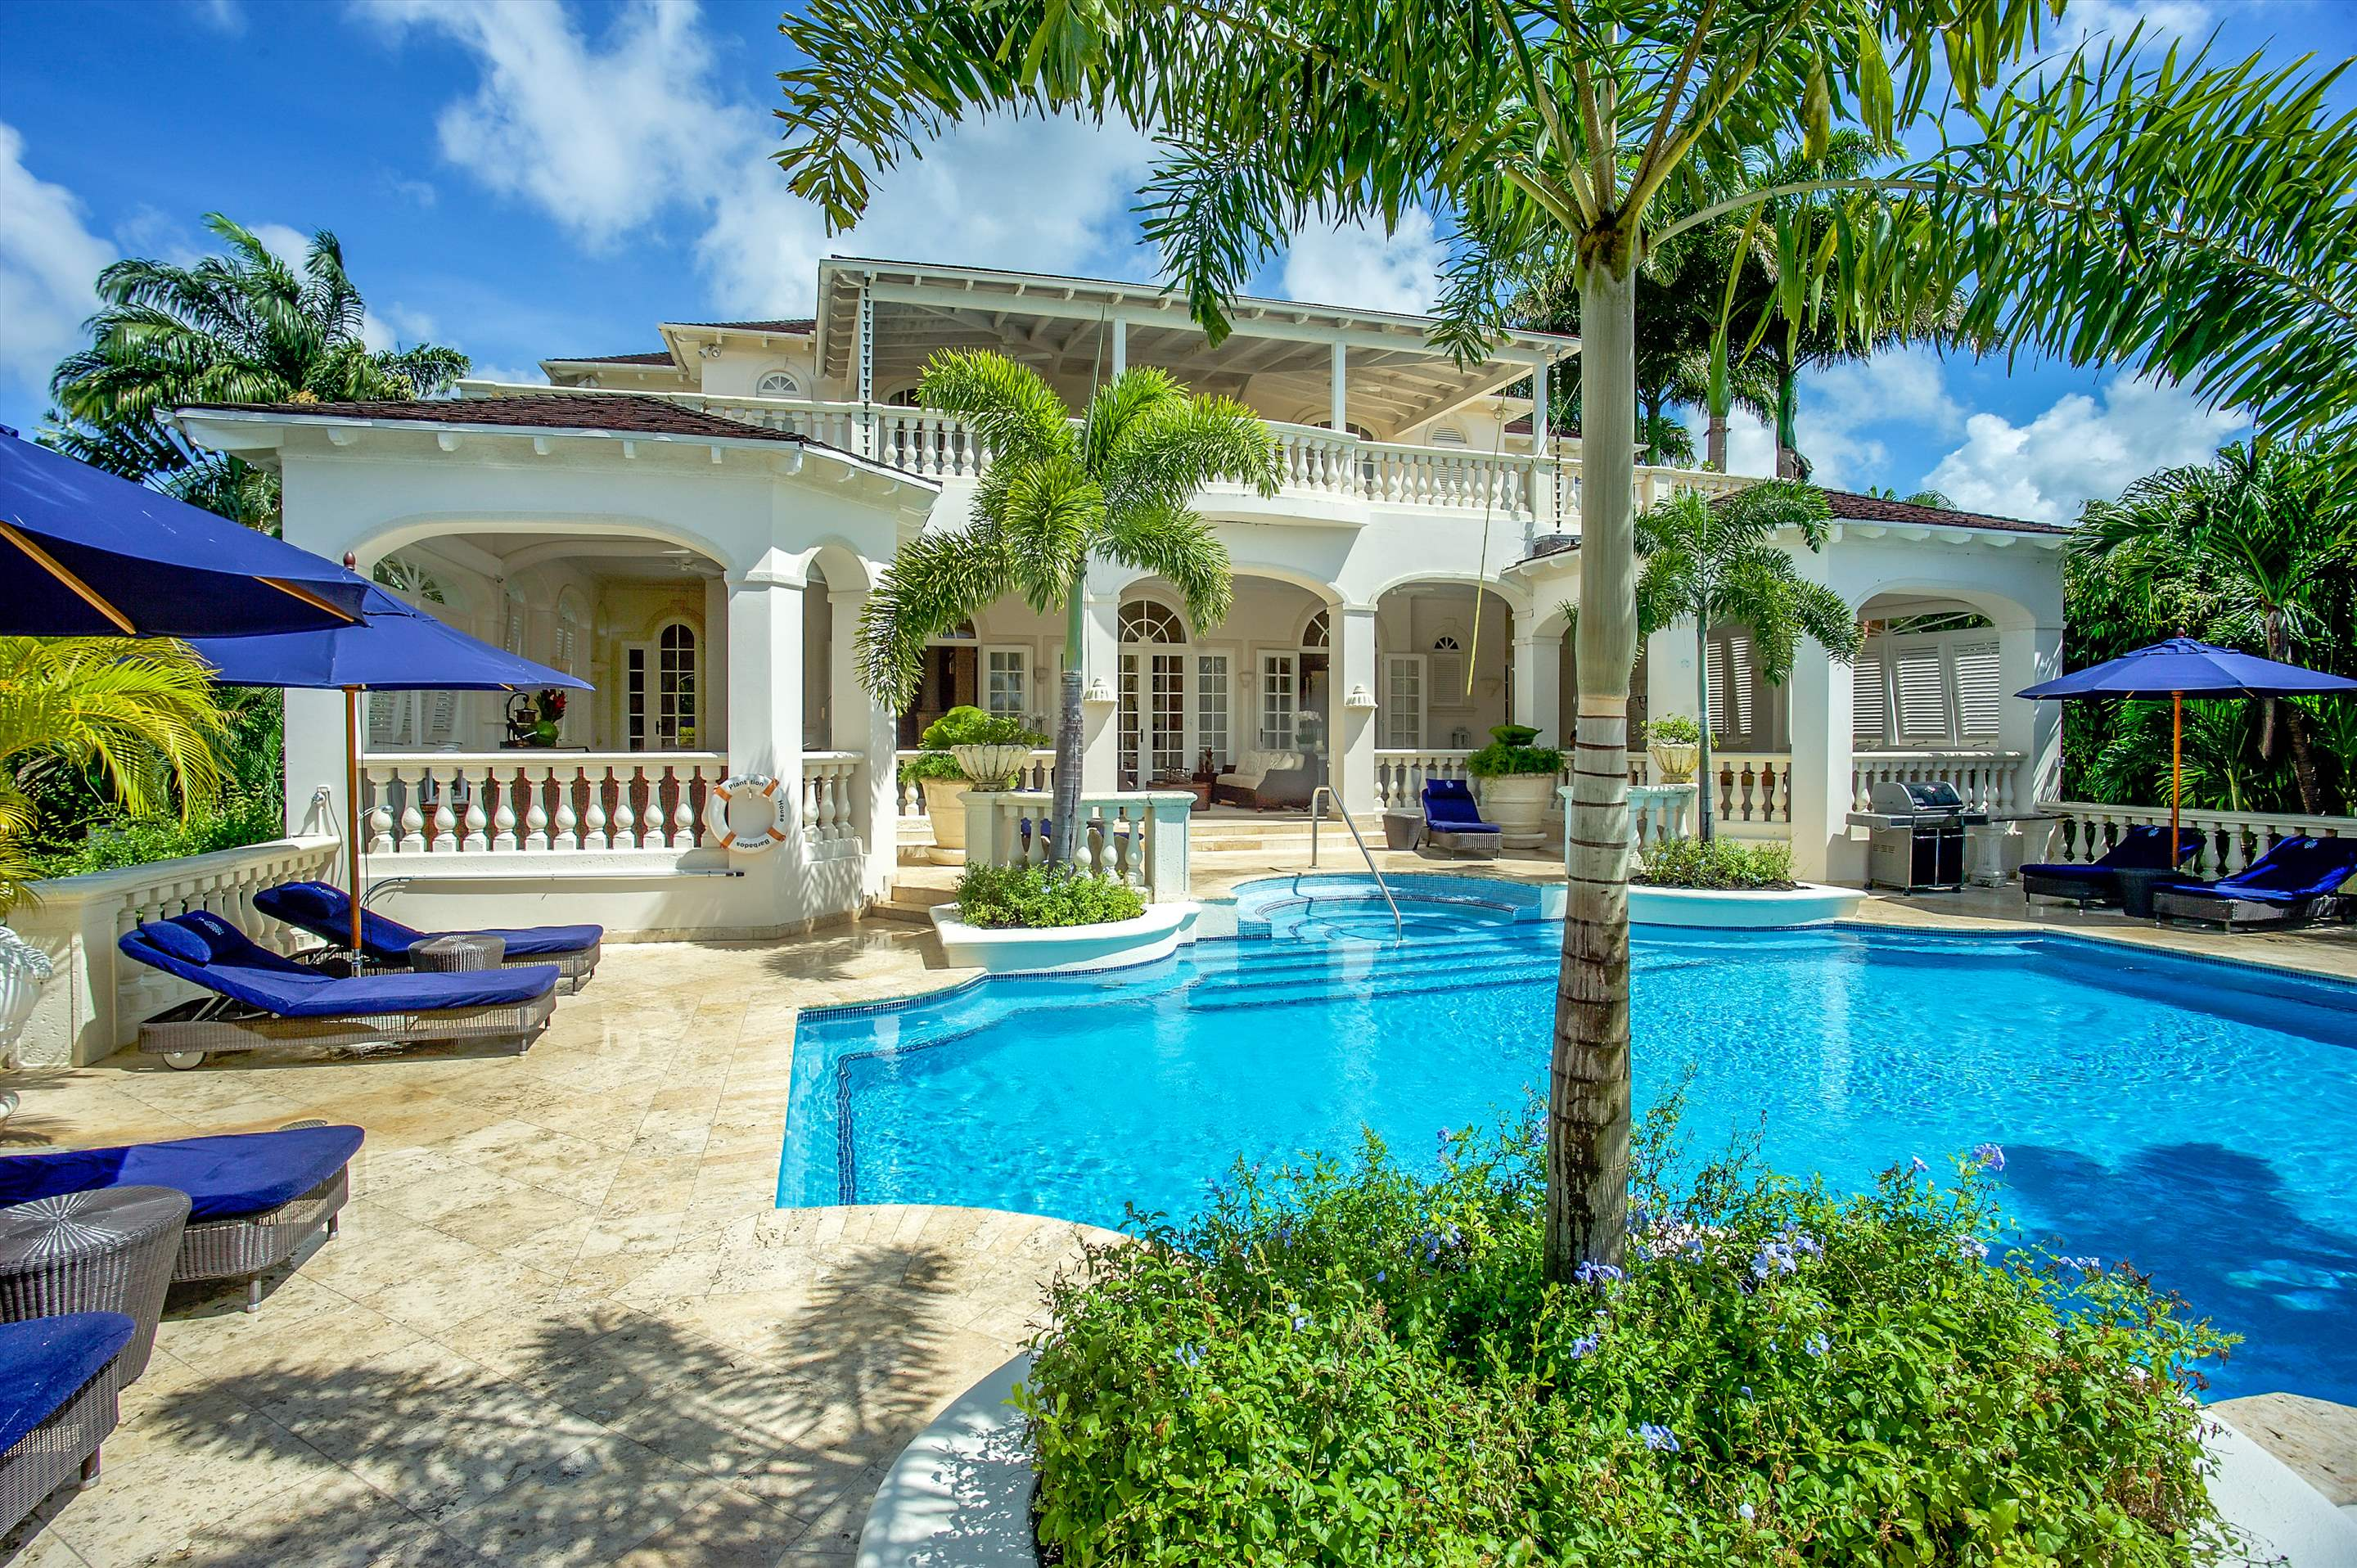 Plantation House, Royal Westmoreland, 6 bedroom, 6 bedroom villa in St. James & West Coast, Barbados Photo #11